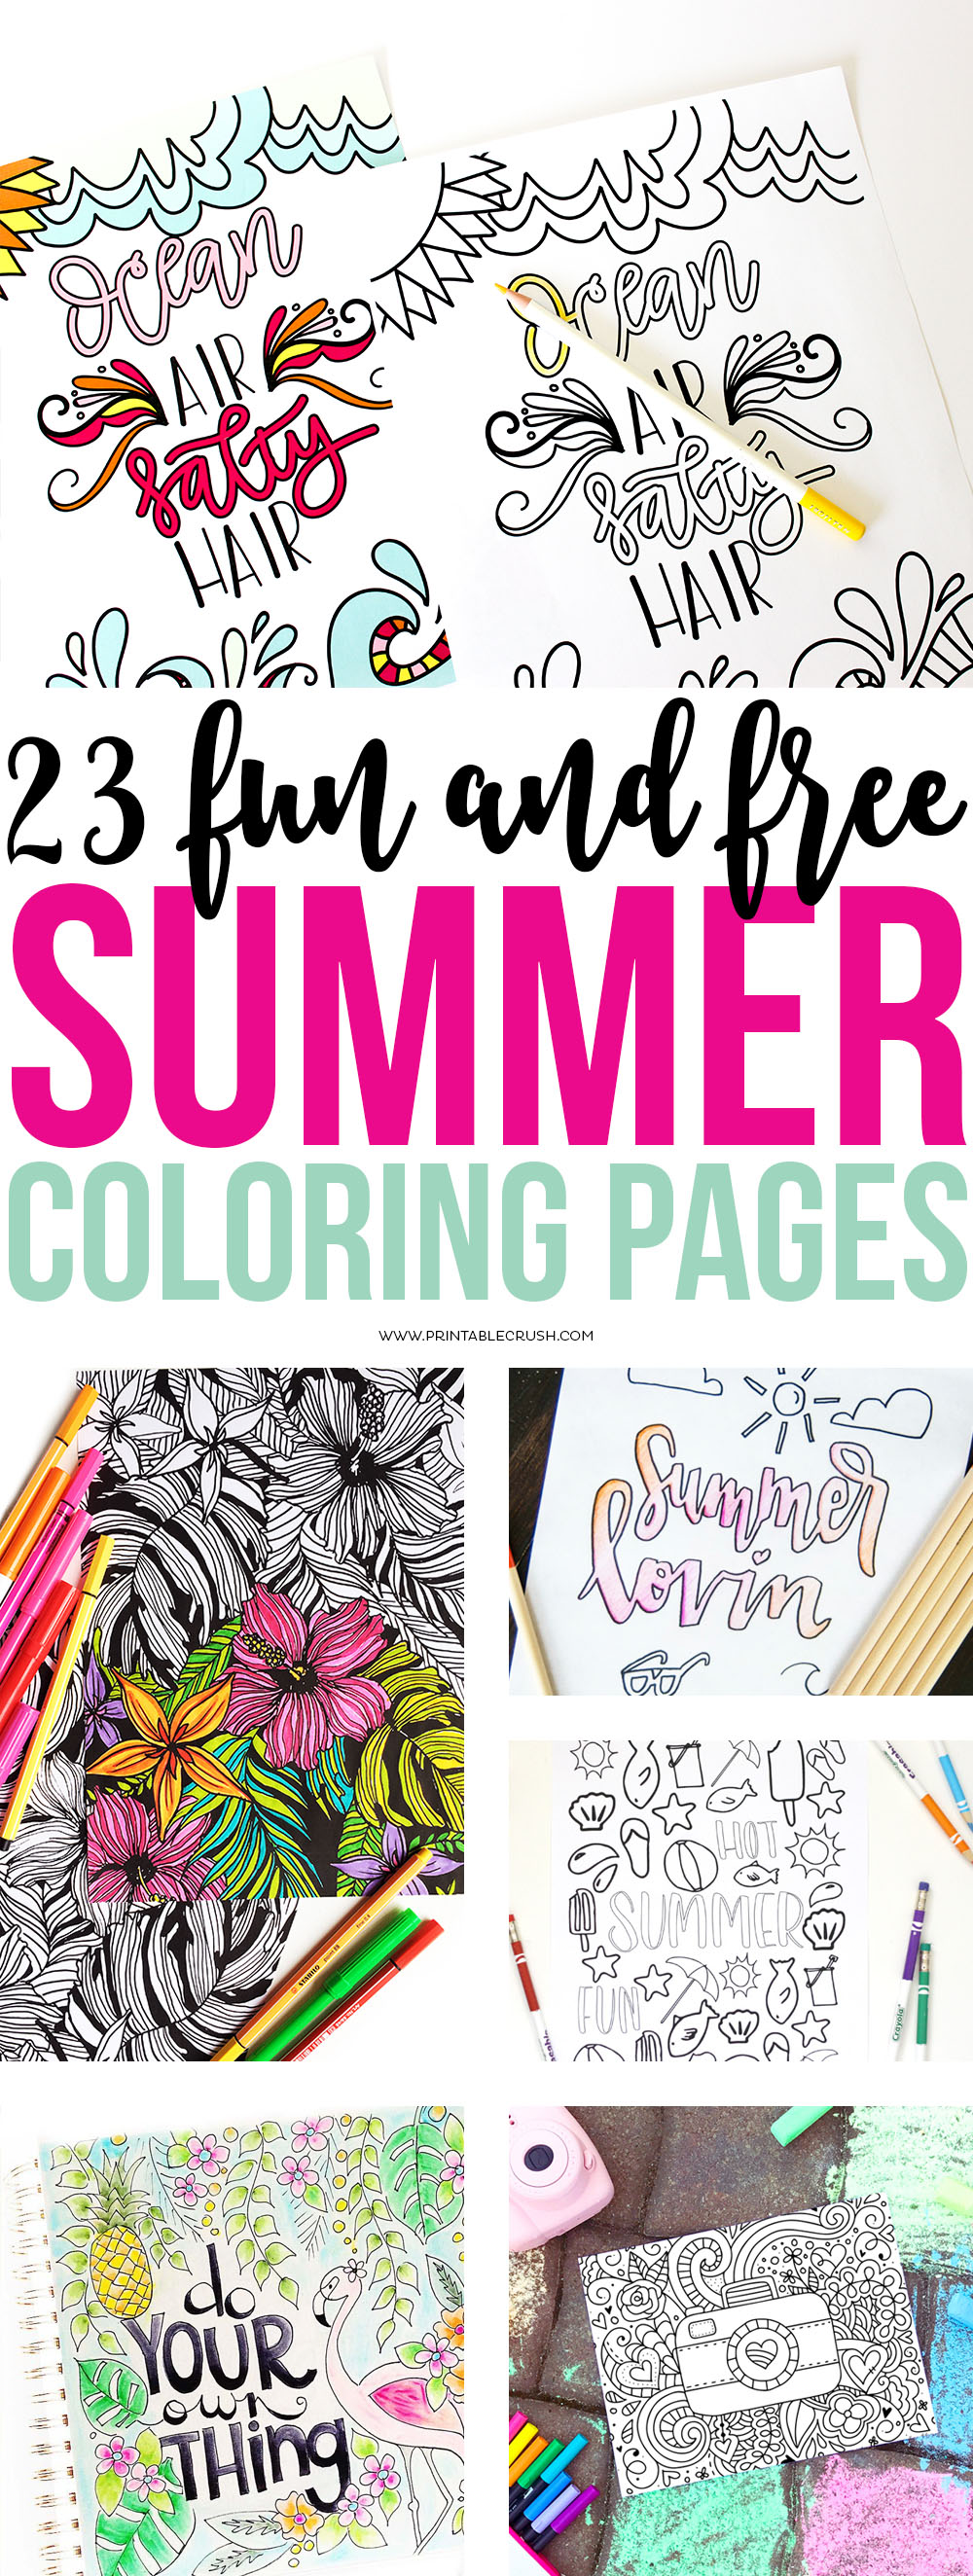 23 Fun and Free Summer Coloring